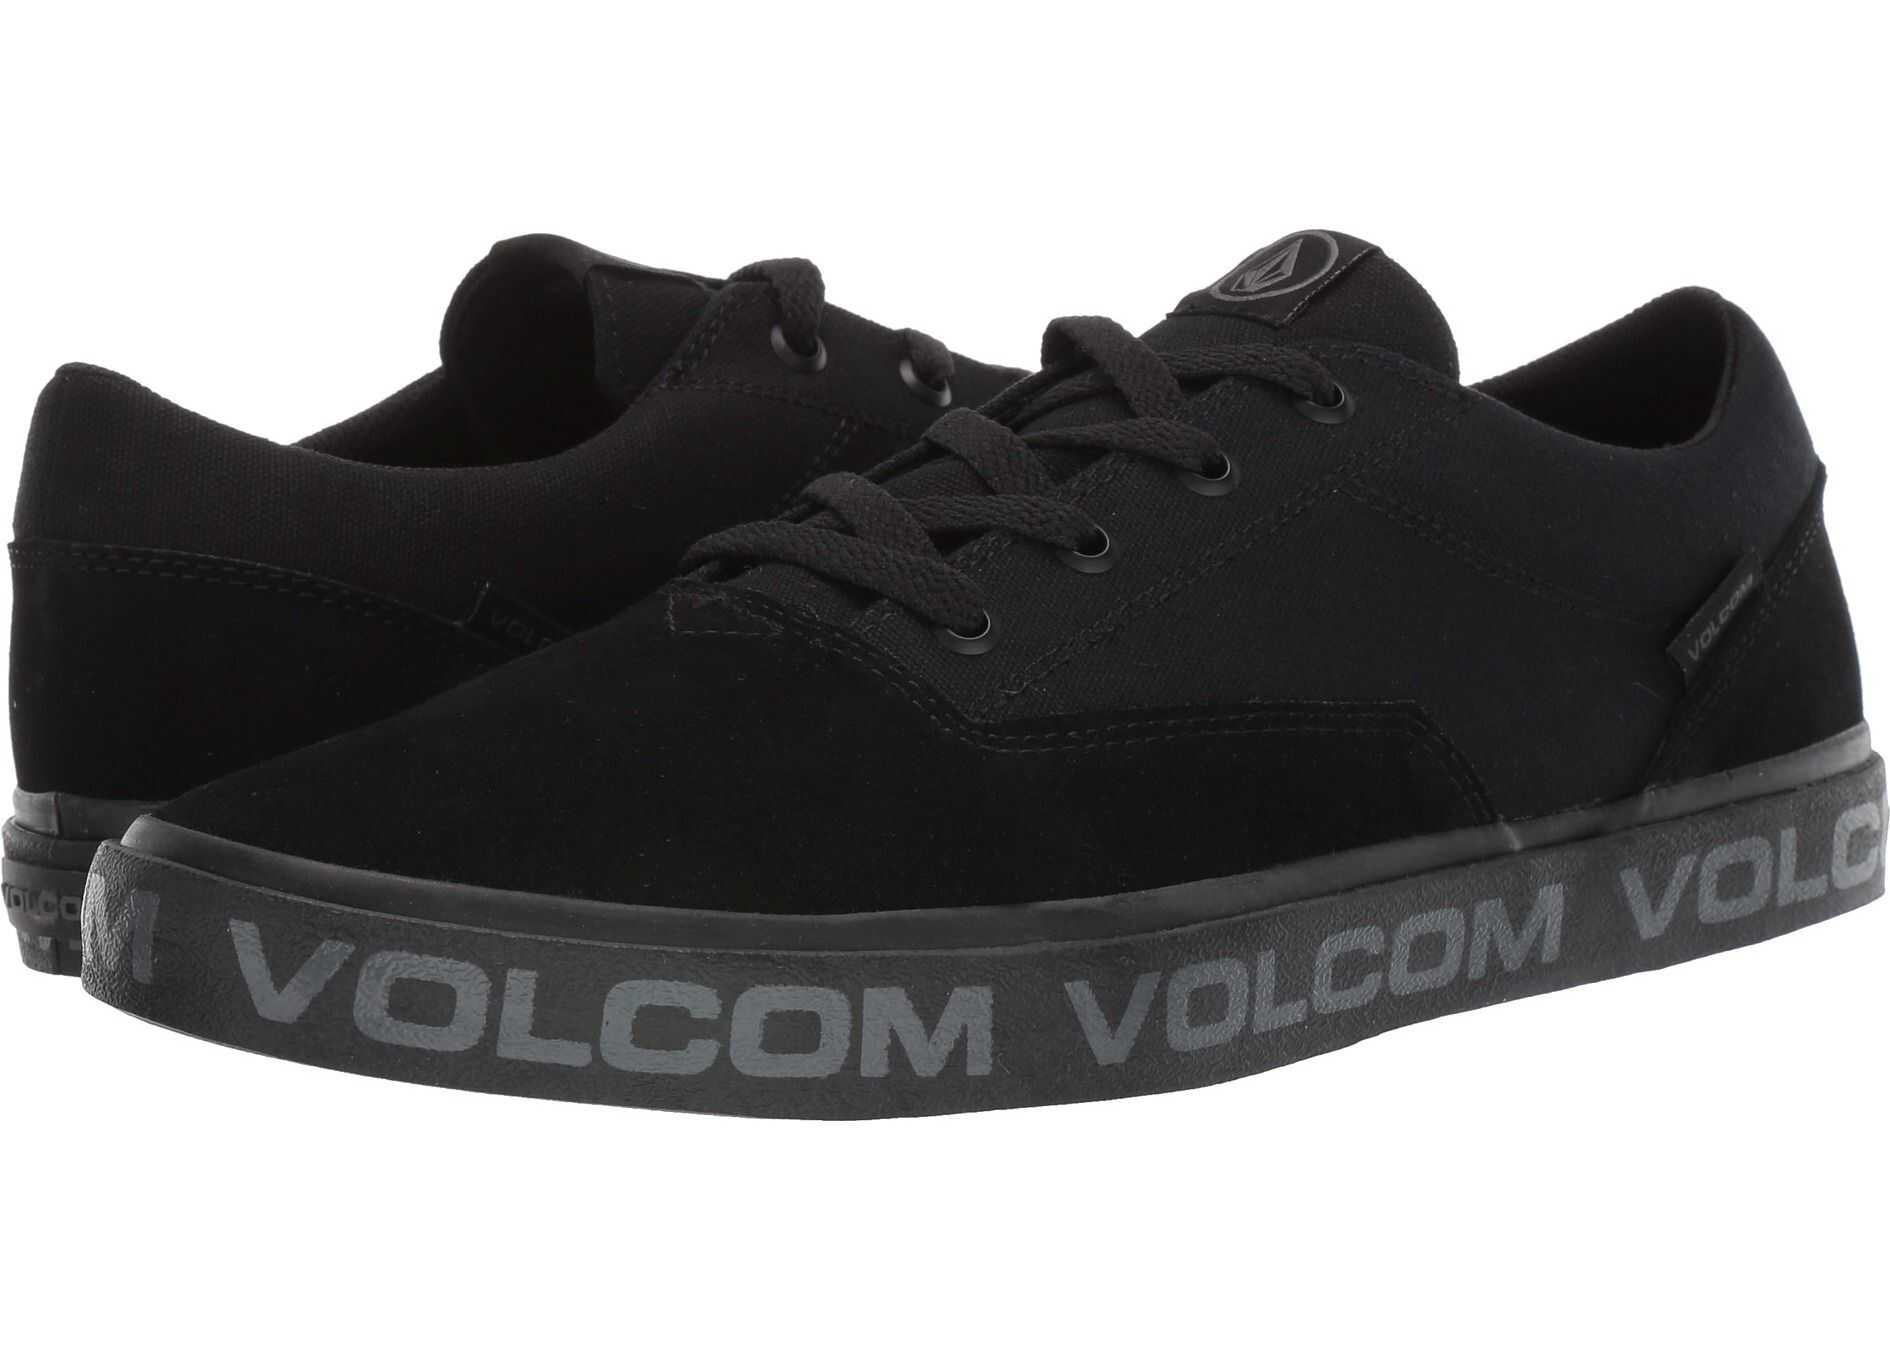 Volcom Draw Lo Suede Shoes Blackity Black